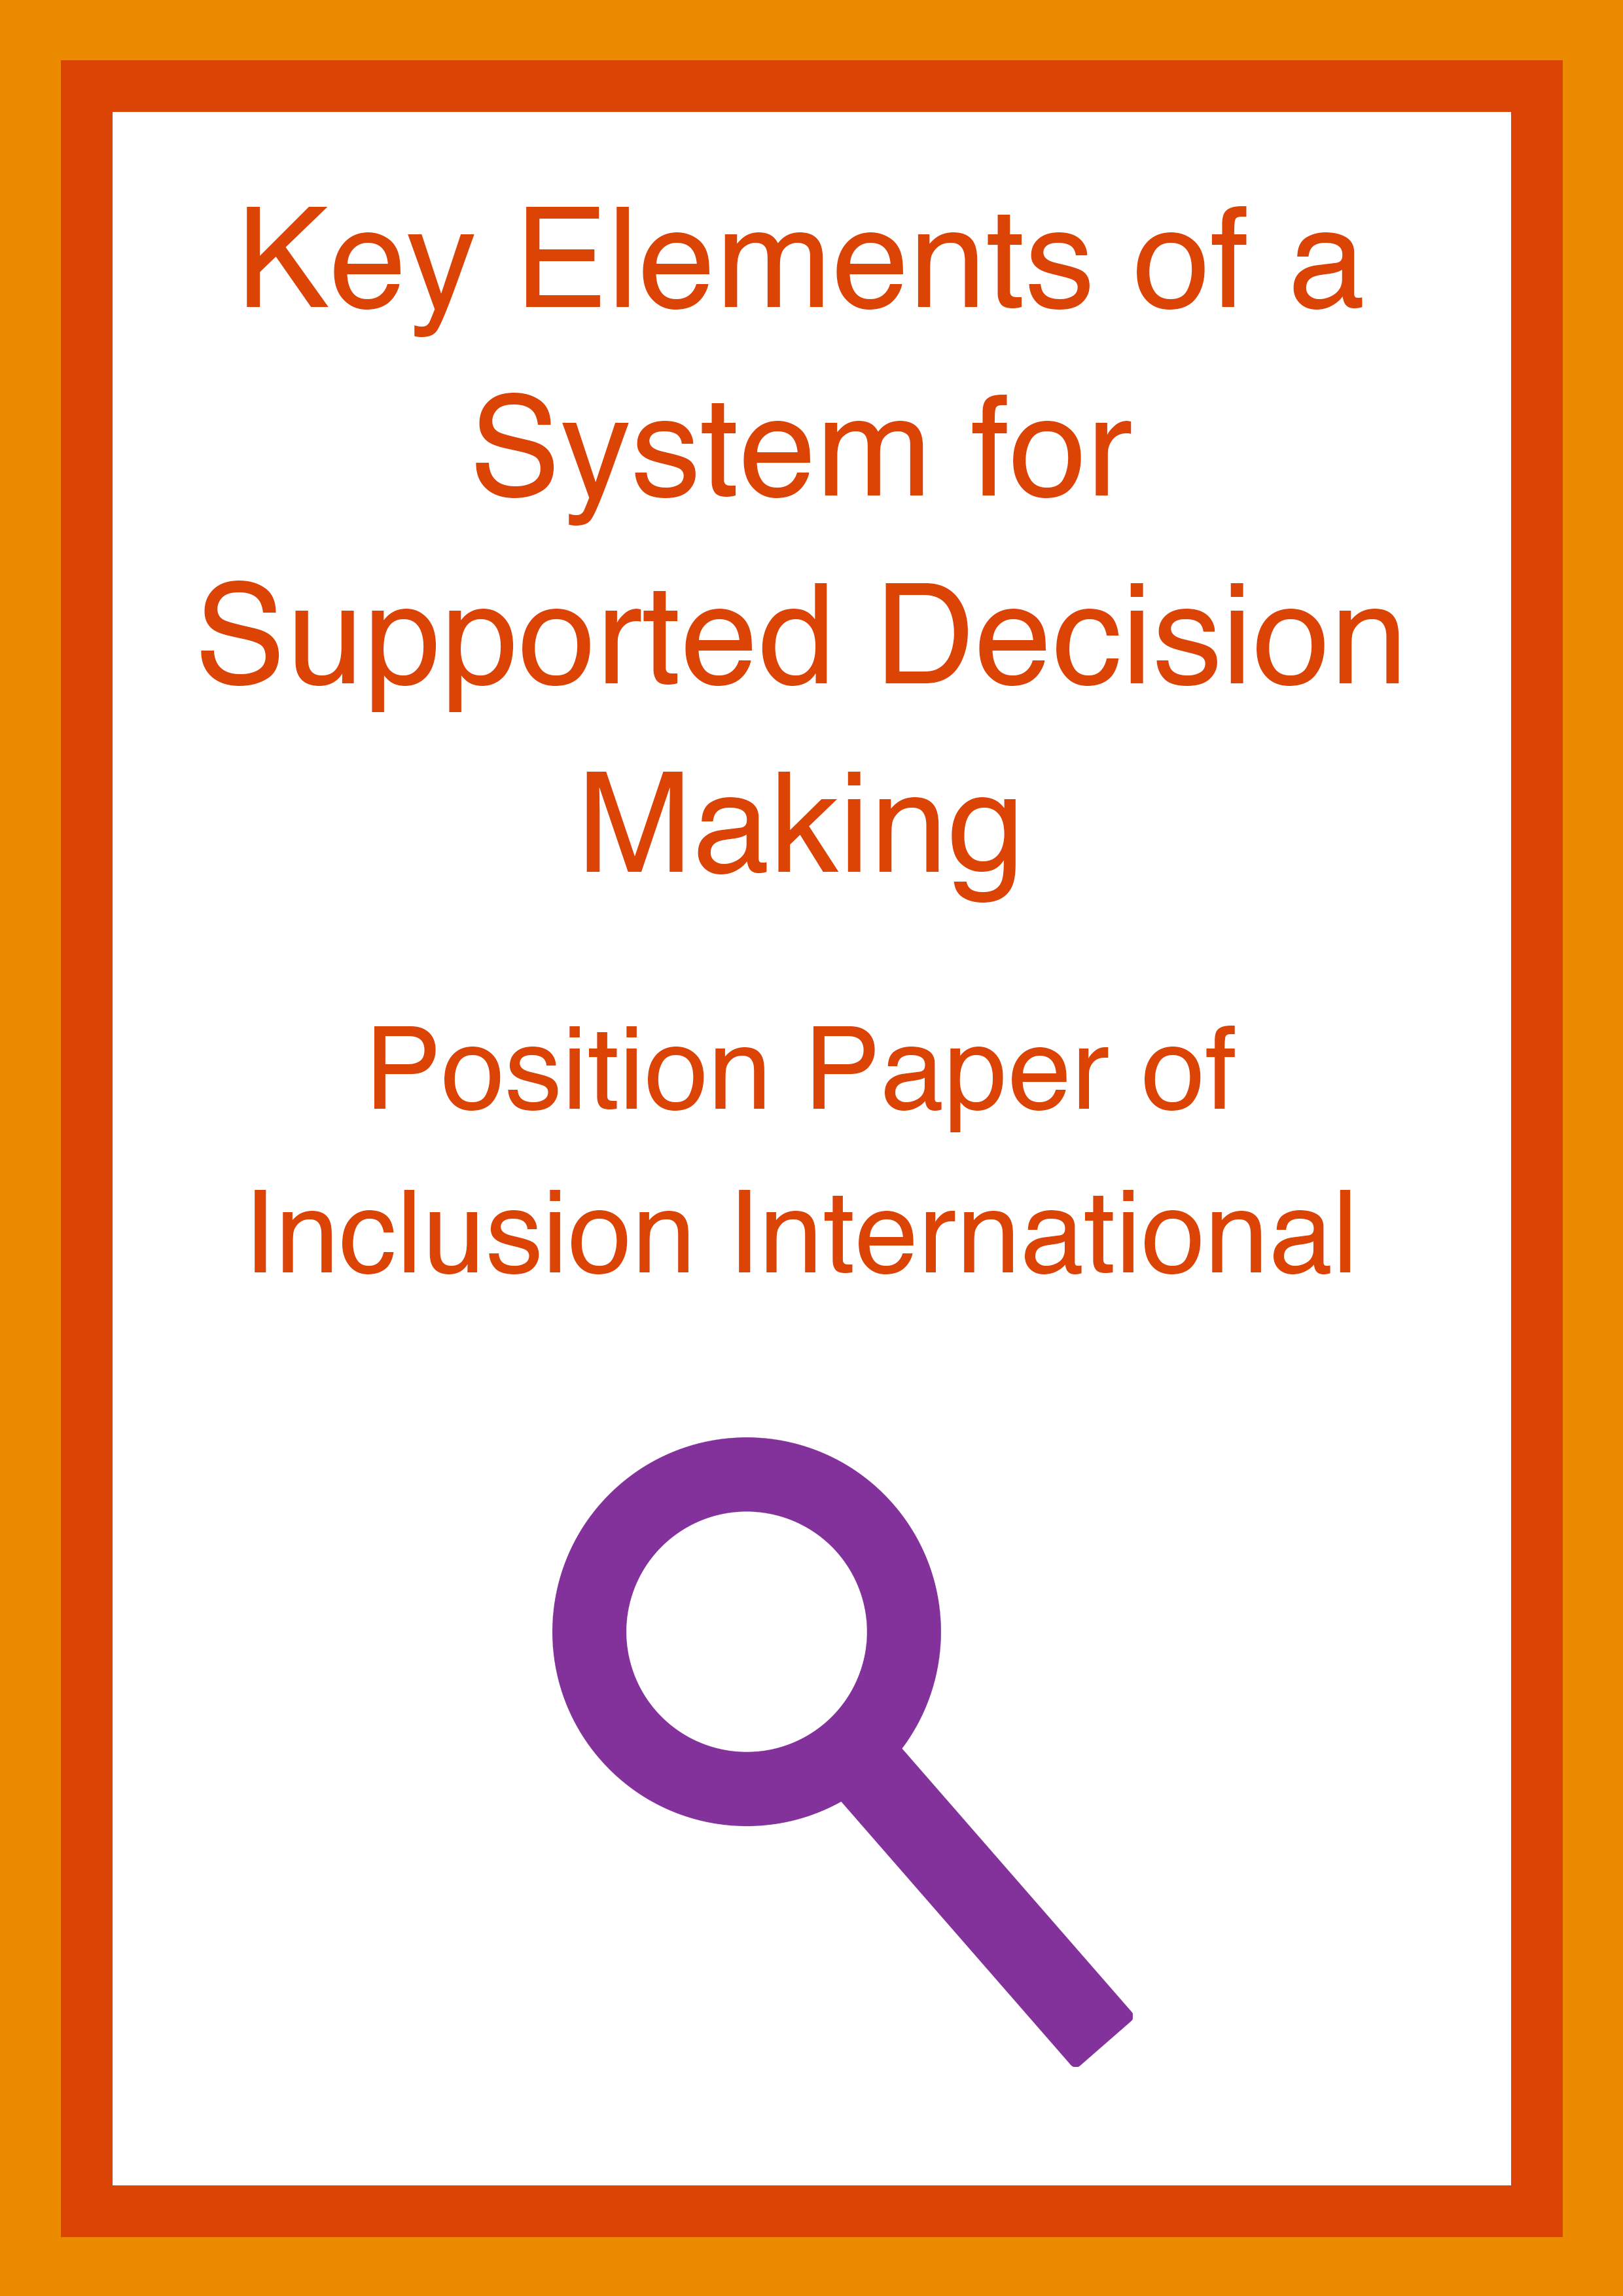 Cover art for: Key Elements of a System for Supported Decision Making: Inclusion International Position Paper